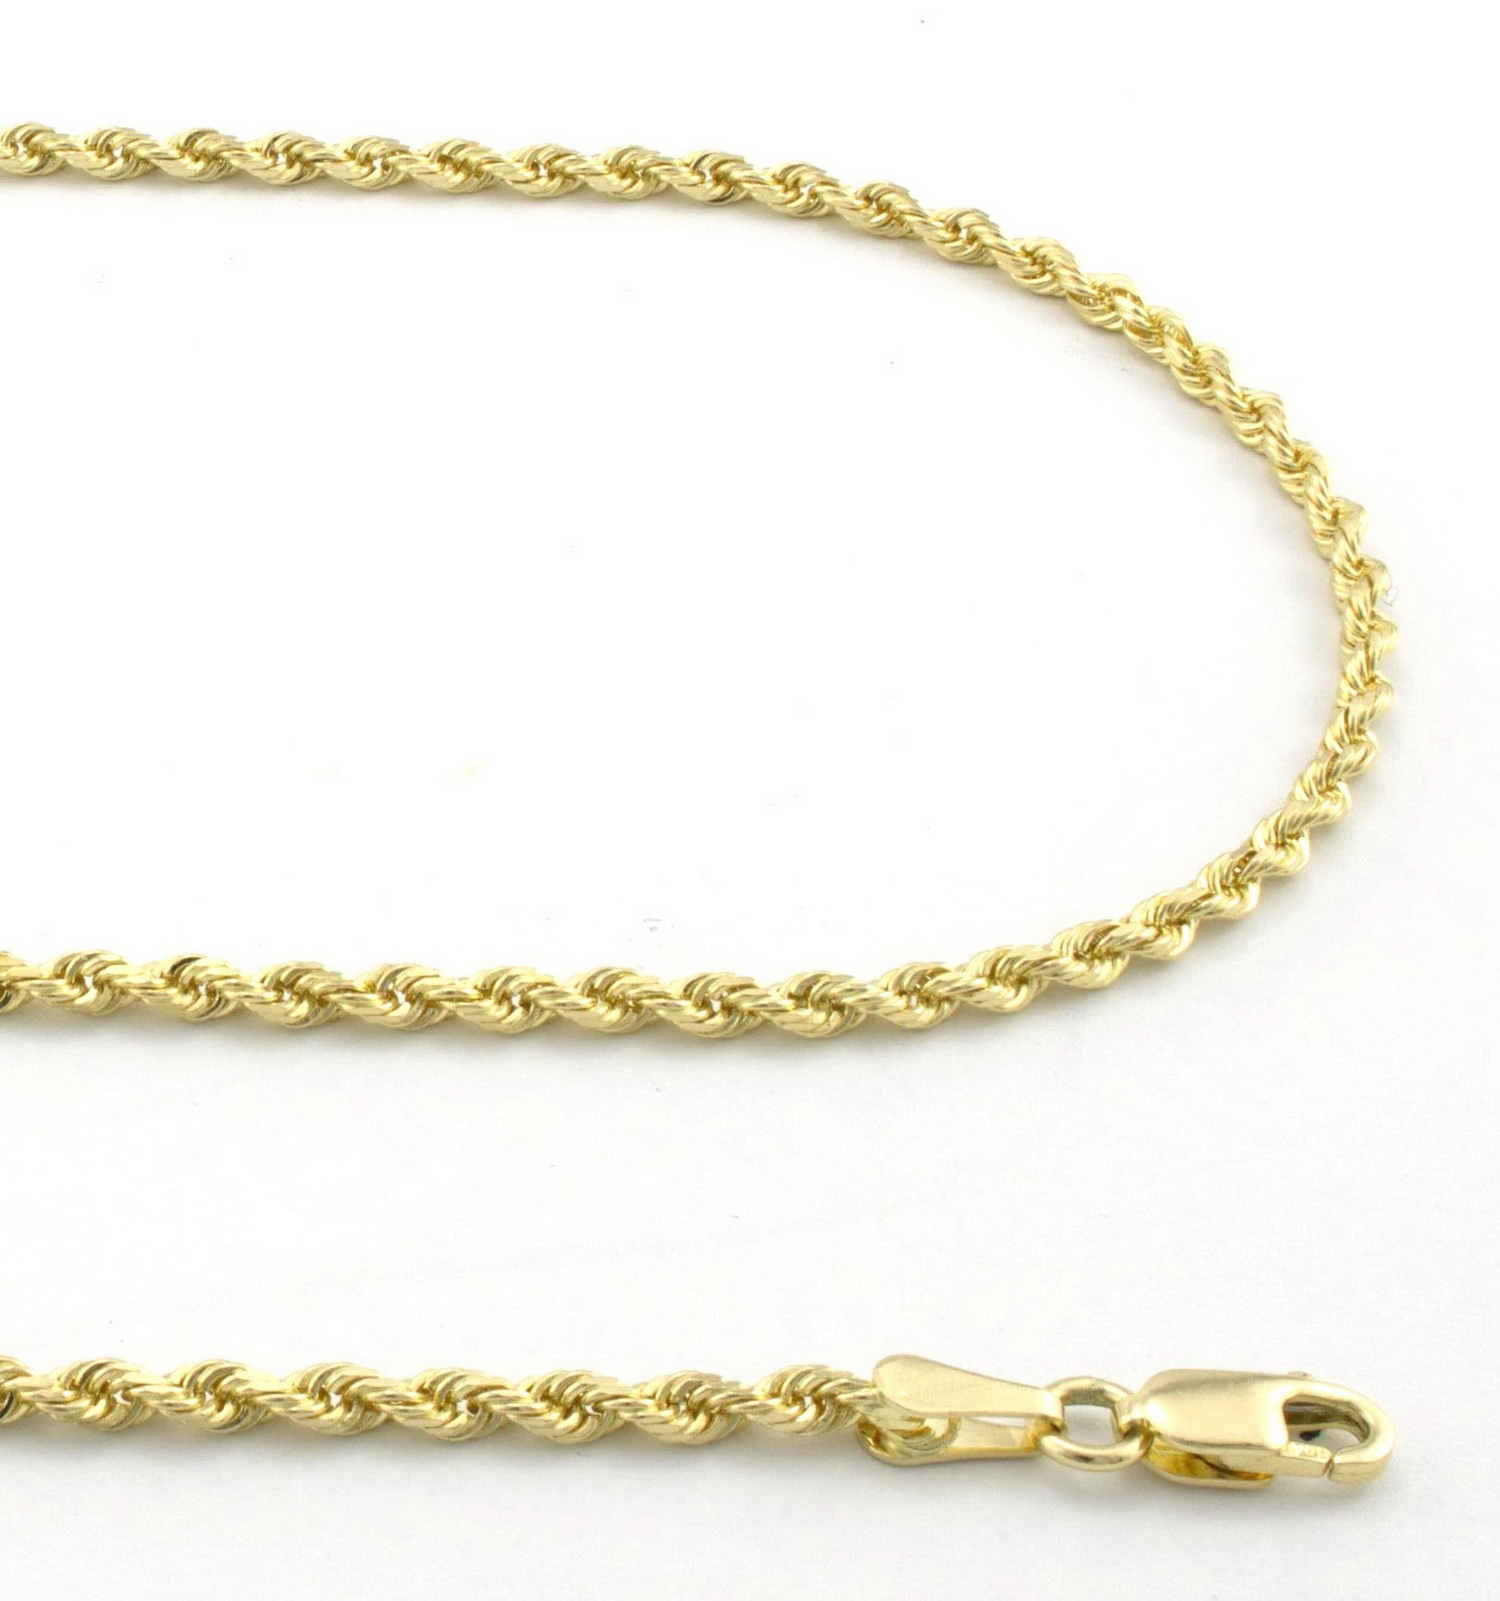 chain silver vermeil heart a bracelet link plated necklace anklet gold all sizes sterling solid